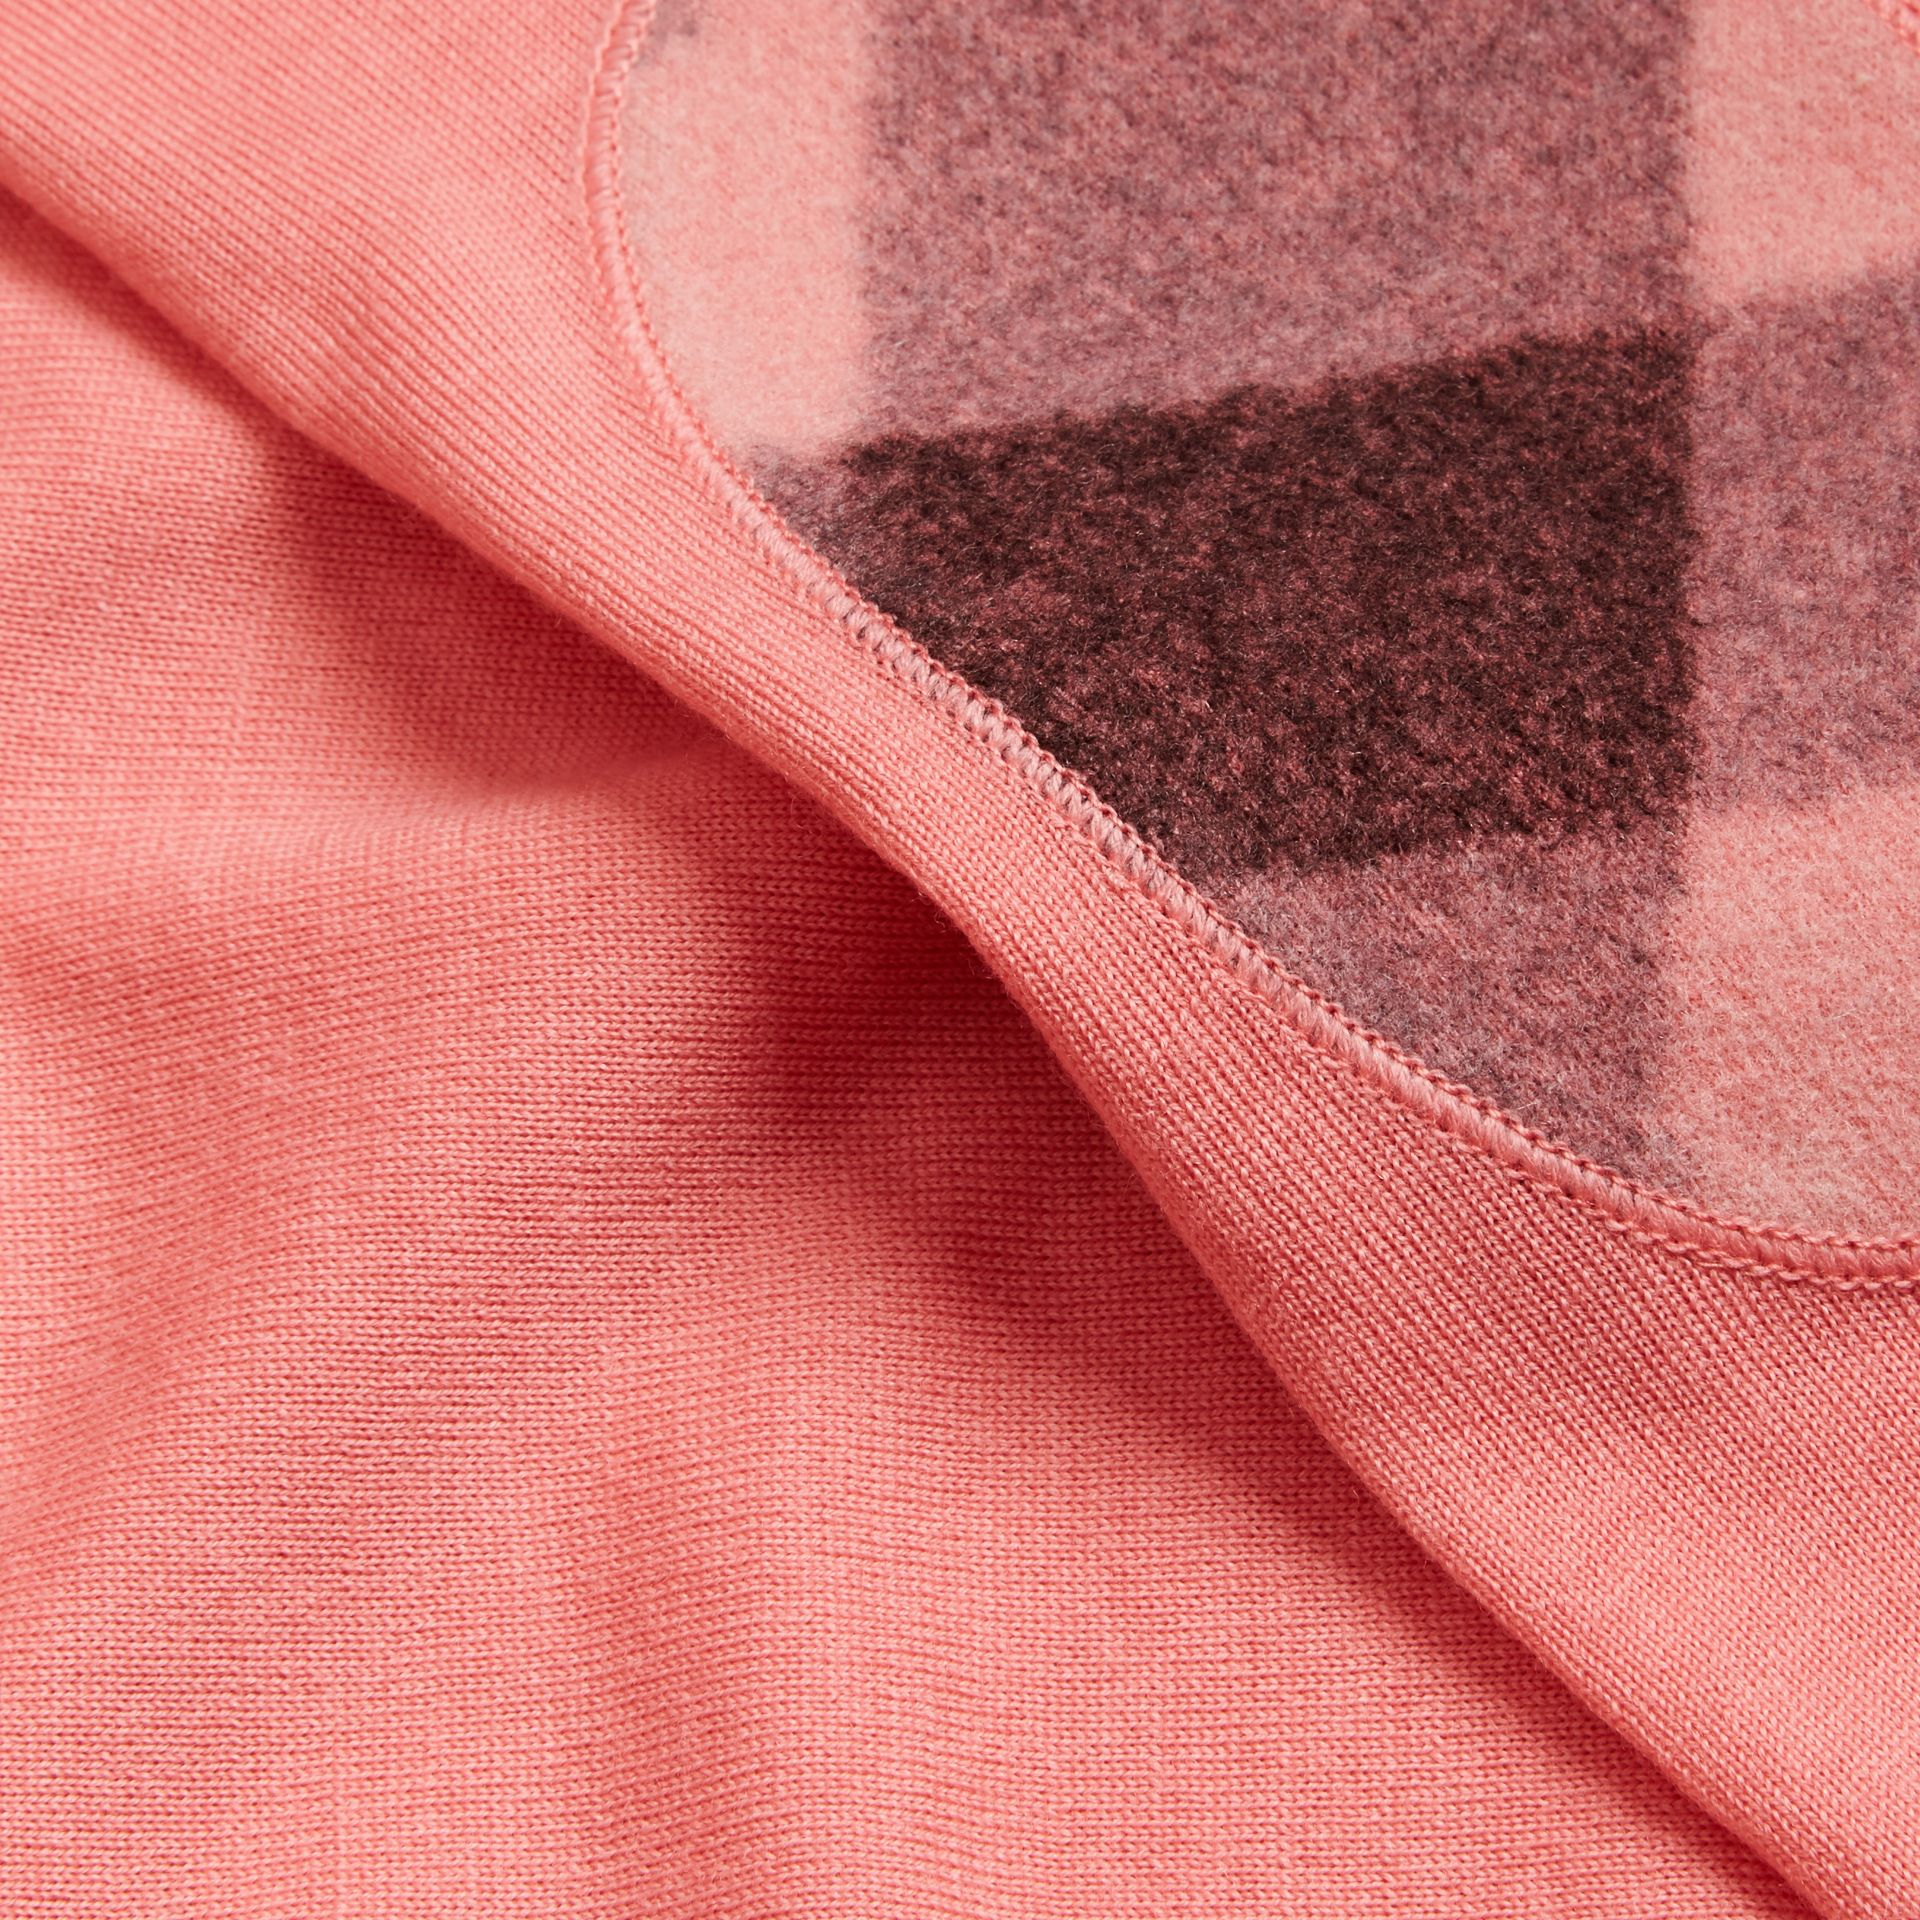 Pale rose pink Check Detail Merino Crew Neck Sweater Pale Rose Pink - gallery image 2